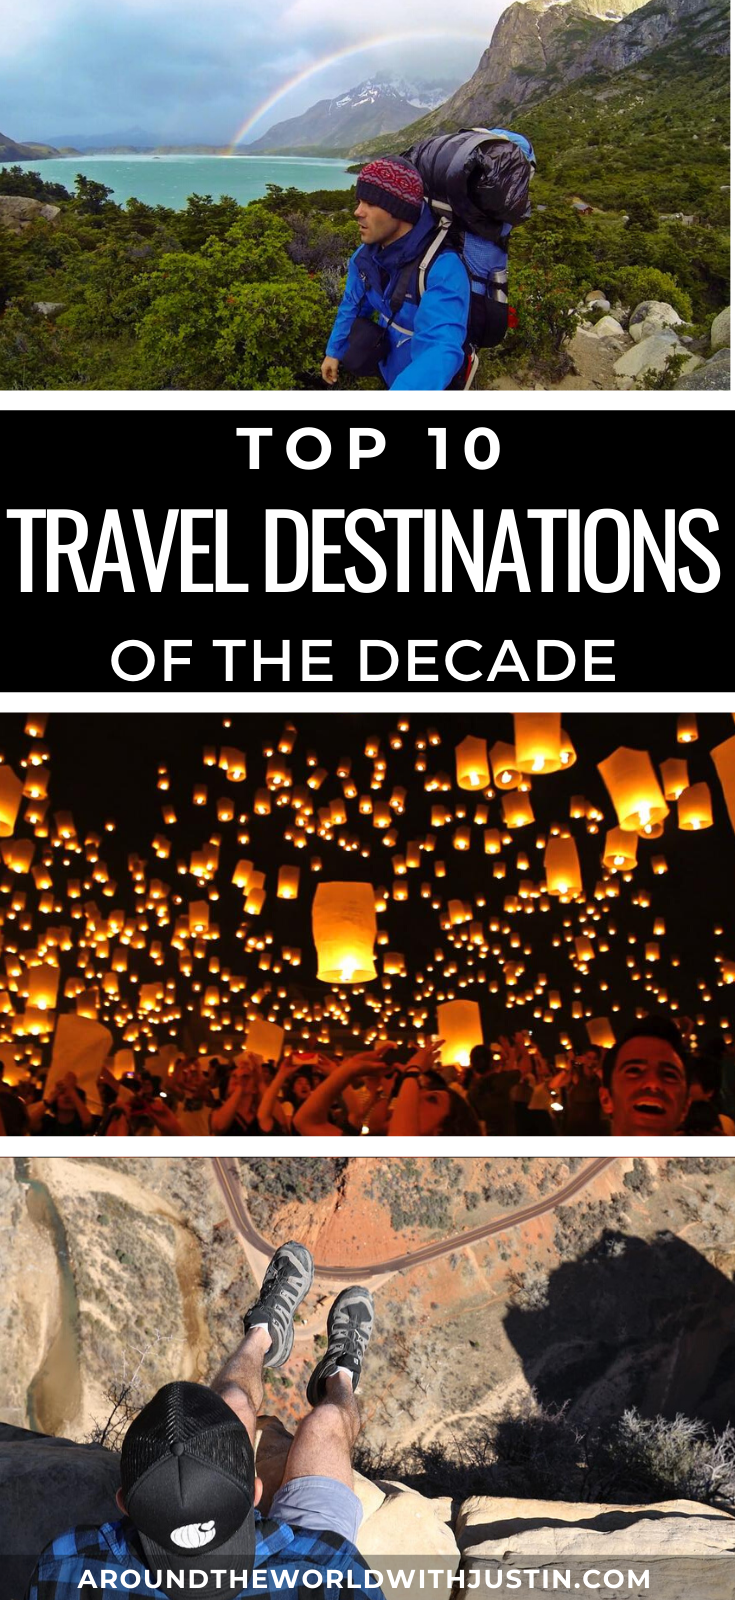 Top 10 Travel Destinations of the Decade